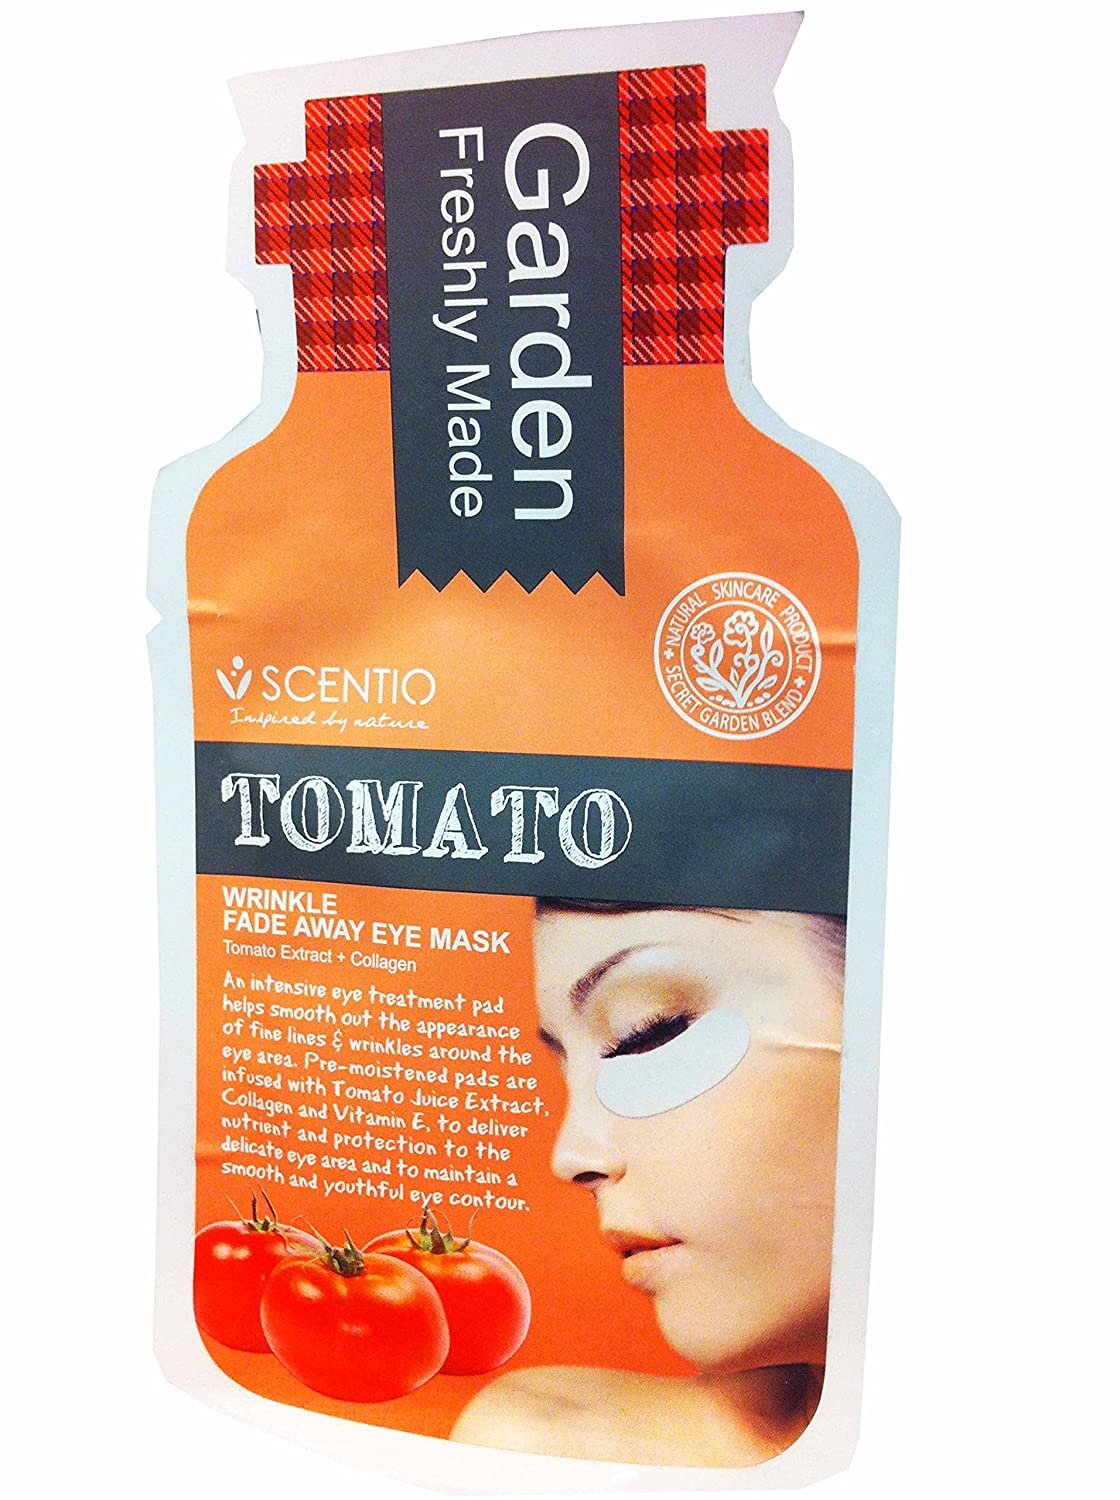 4 Mask sheets of Scentio Tomato Wrinkle Fade Away Eye Mask, Tomato Extract + Collagen. Inspired By Nature. By Beauty Buffet. (4 Pcs/ sheet)